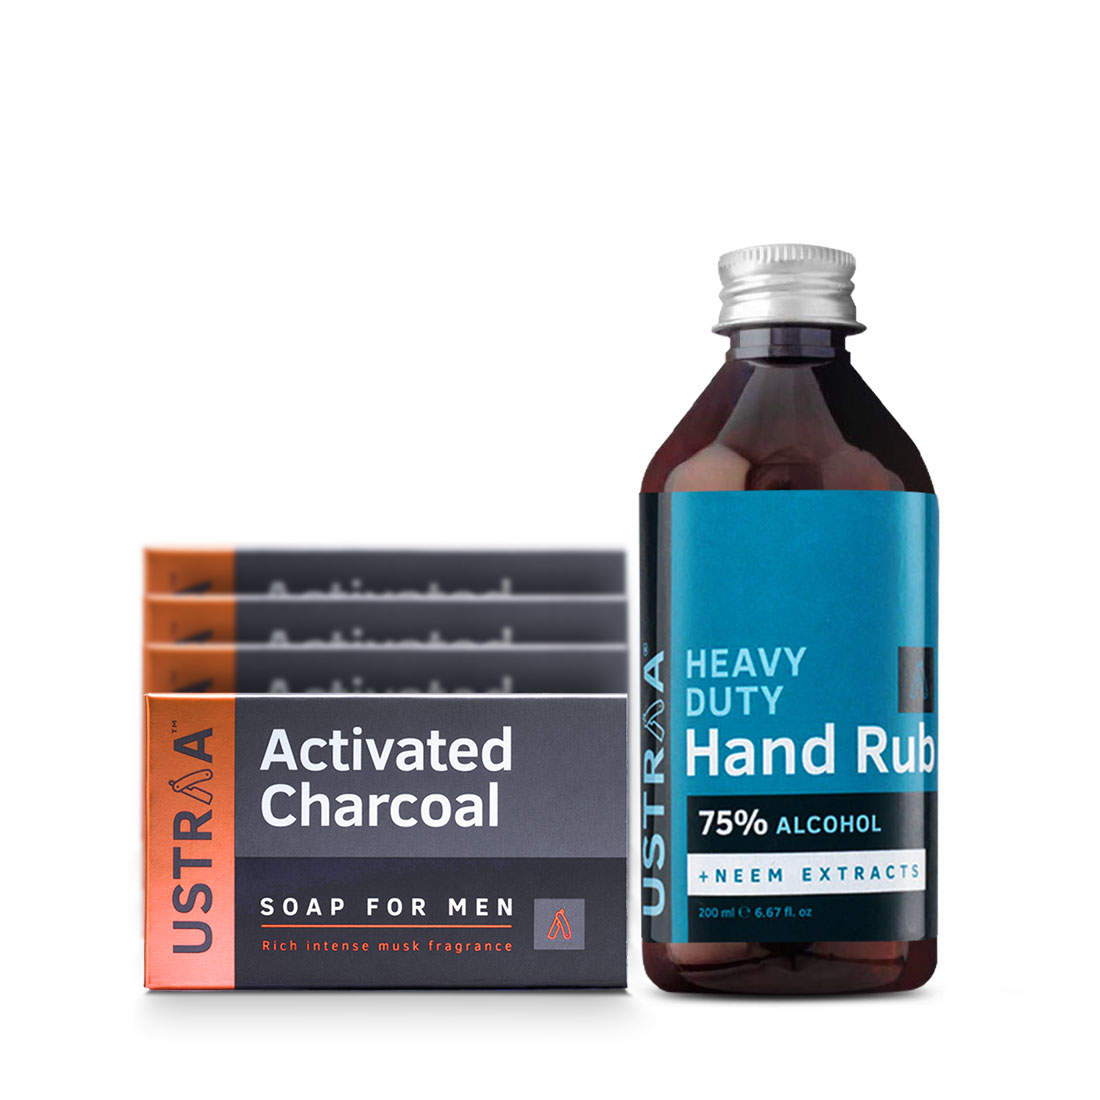 Deo Soap - Activated Charcoal - Pack of 4 & Hand Rub - 200 ml